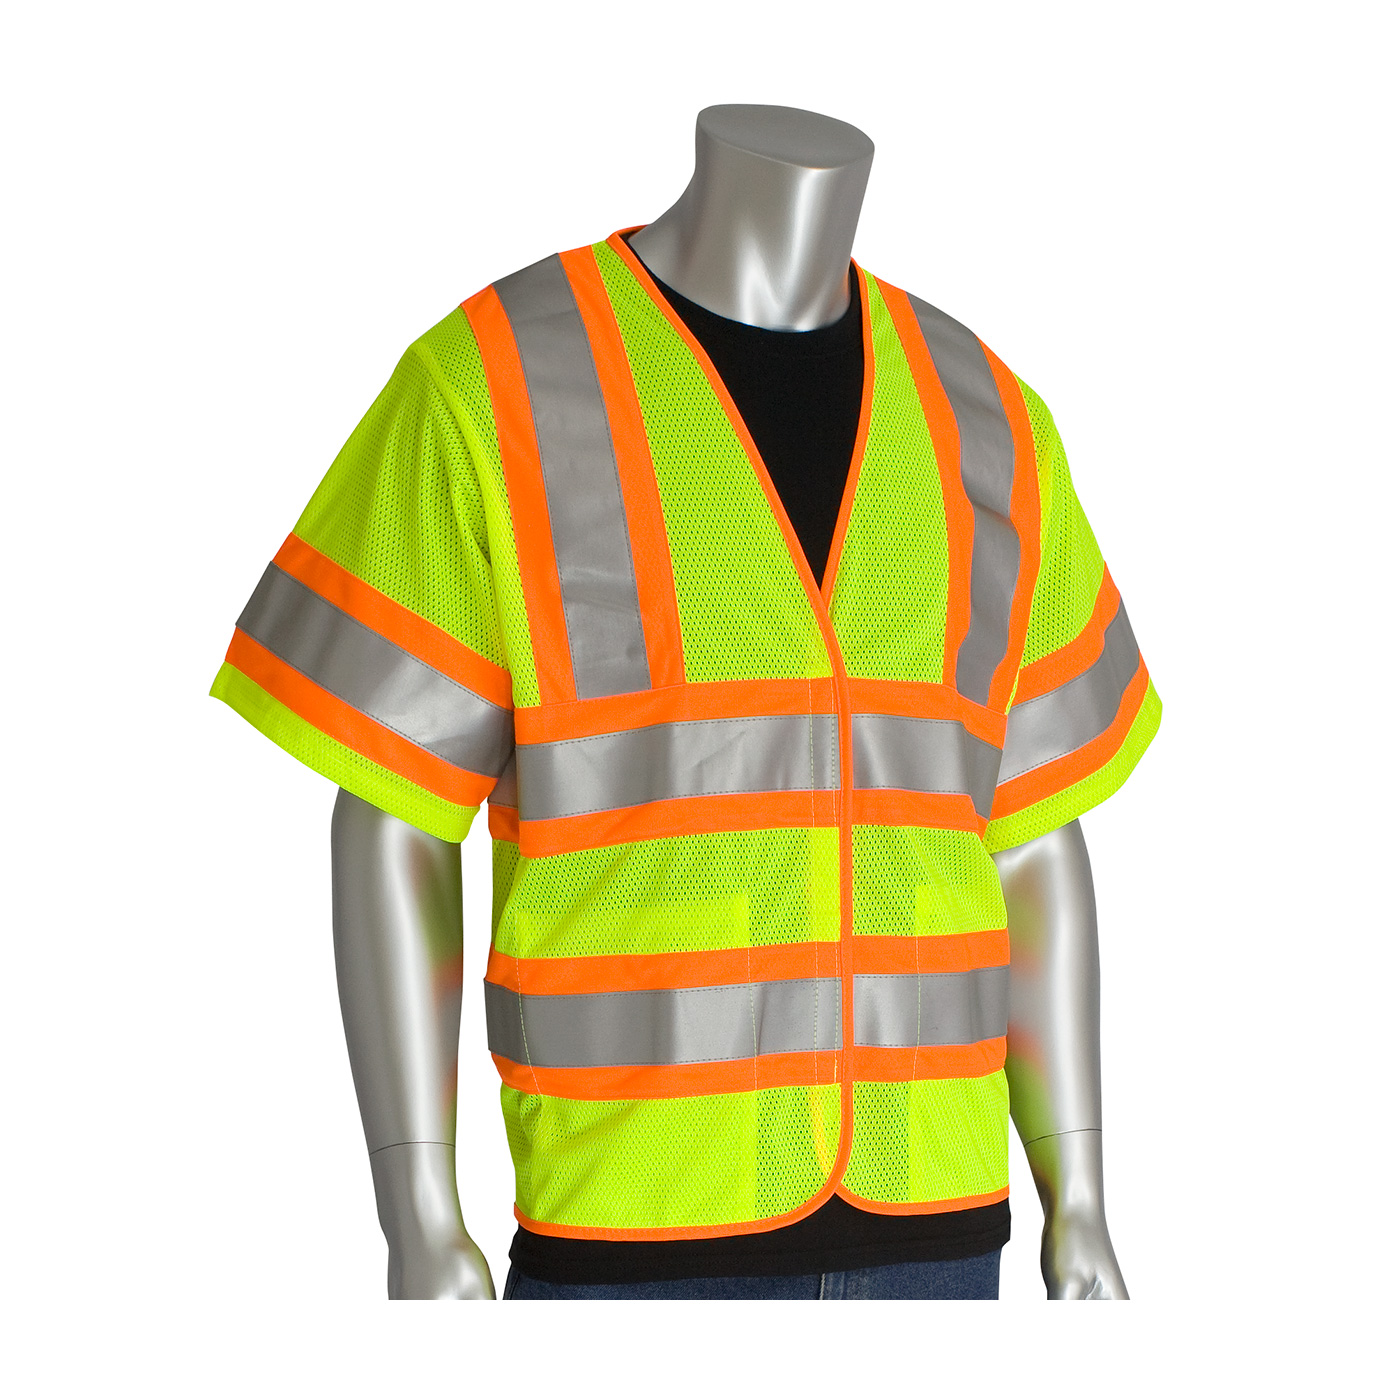 #305-HSVPFR PIP Flame Retardant Two-Tone Safety Vest - Class R3